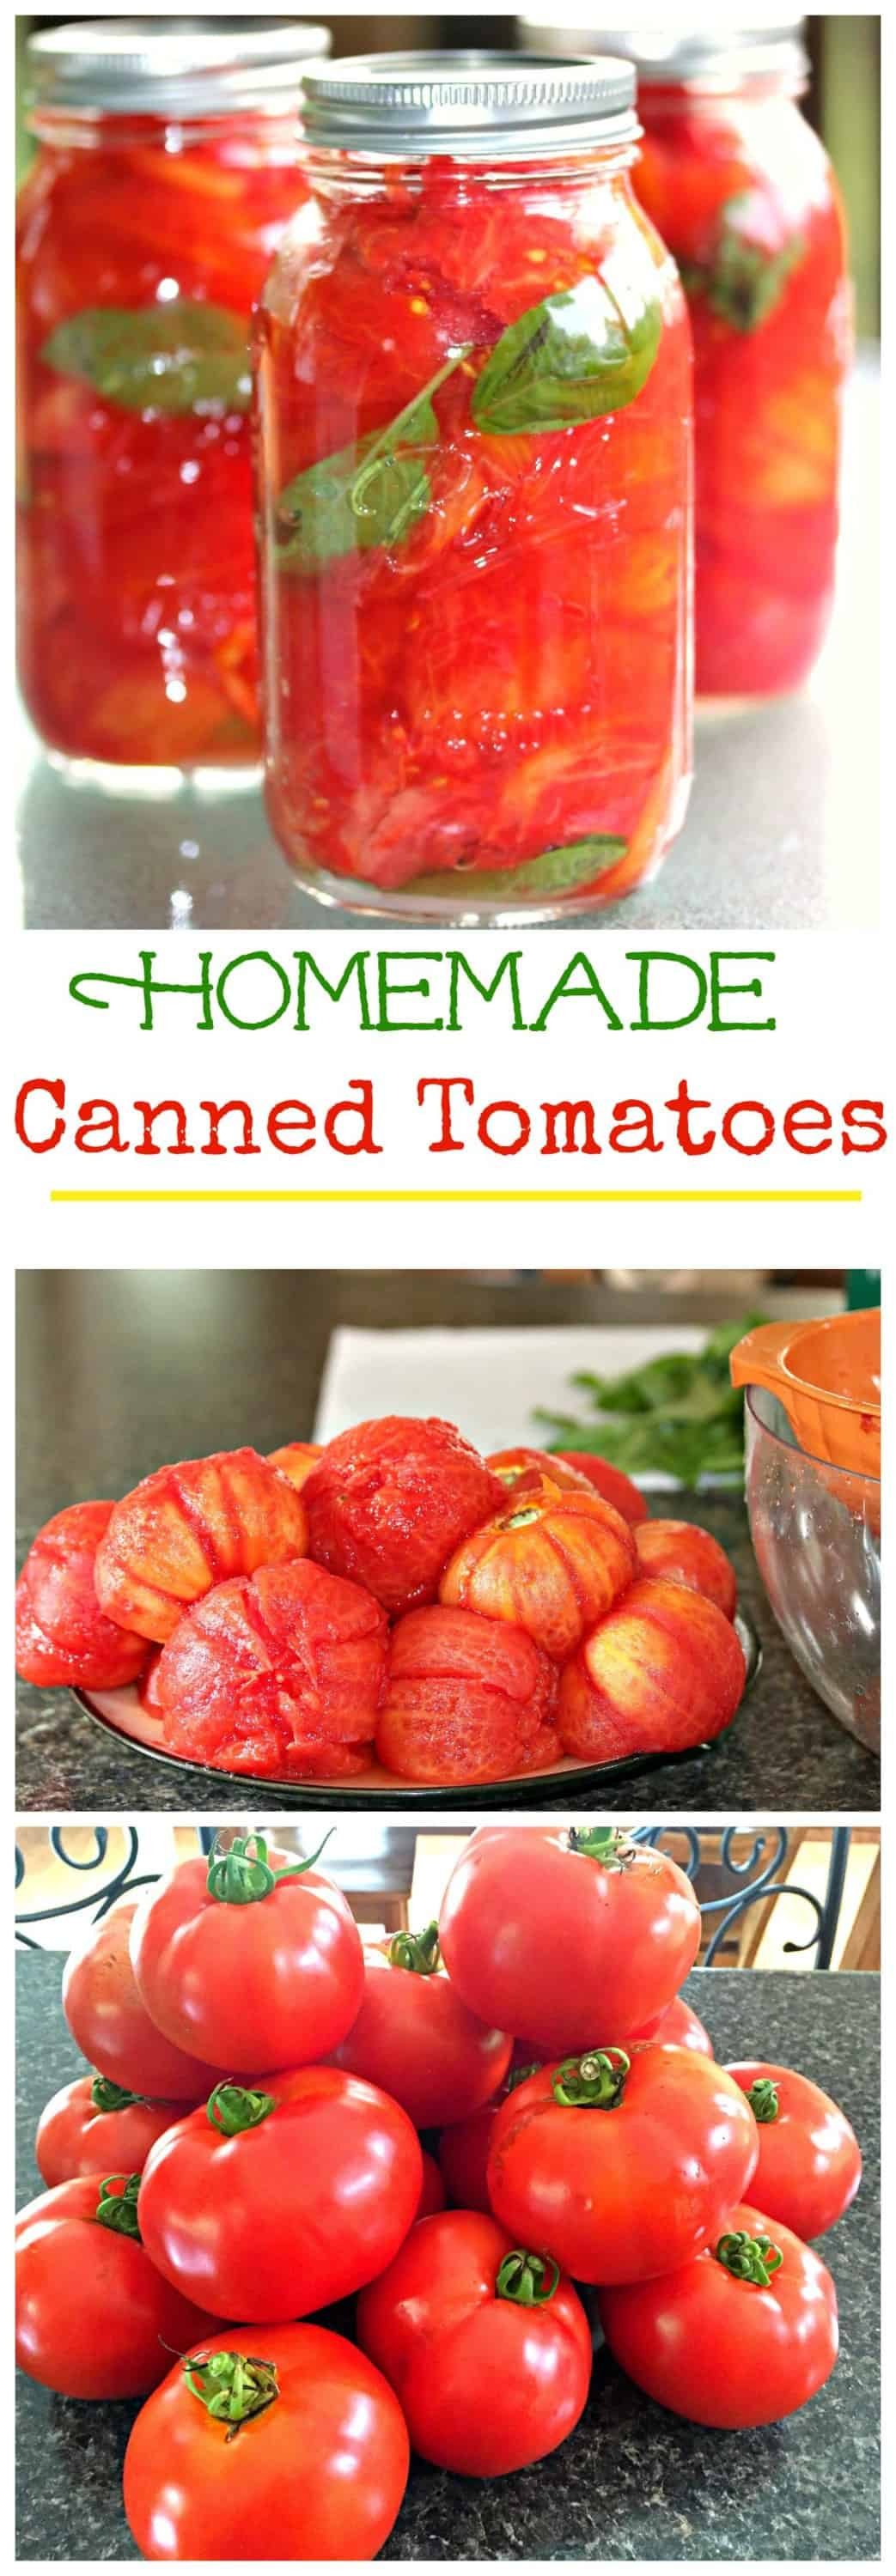 Homemade-Canned-Tomatoes